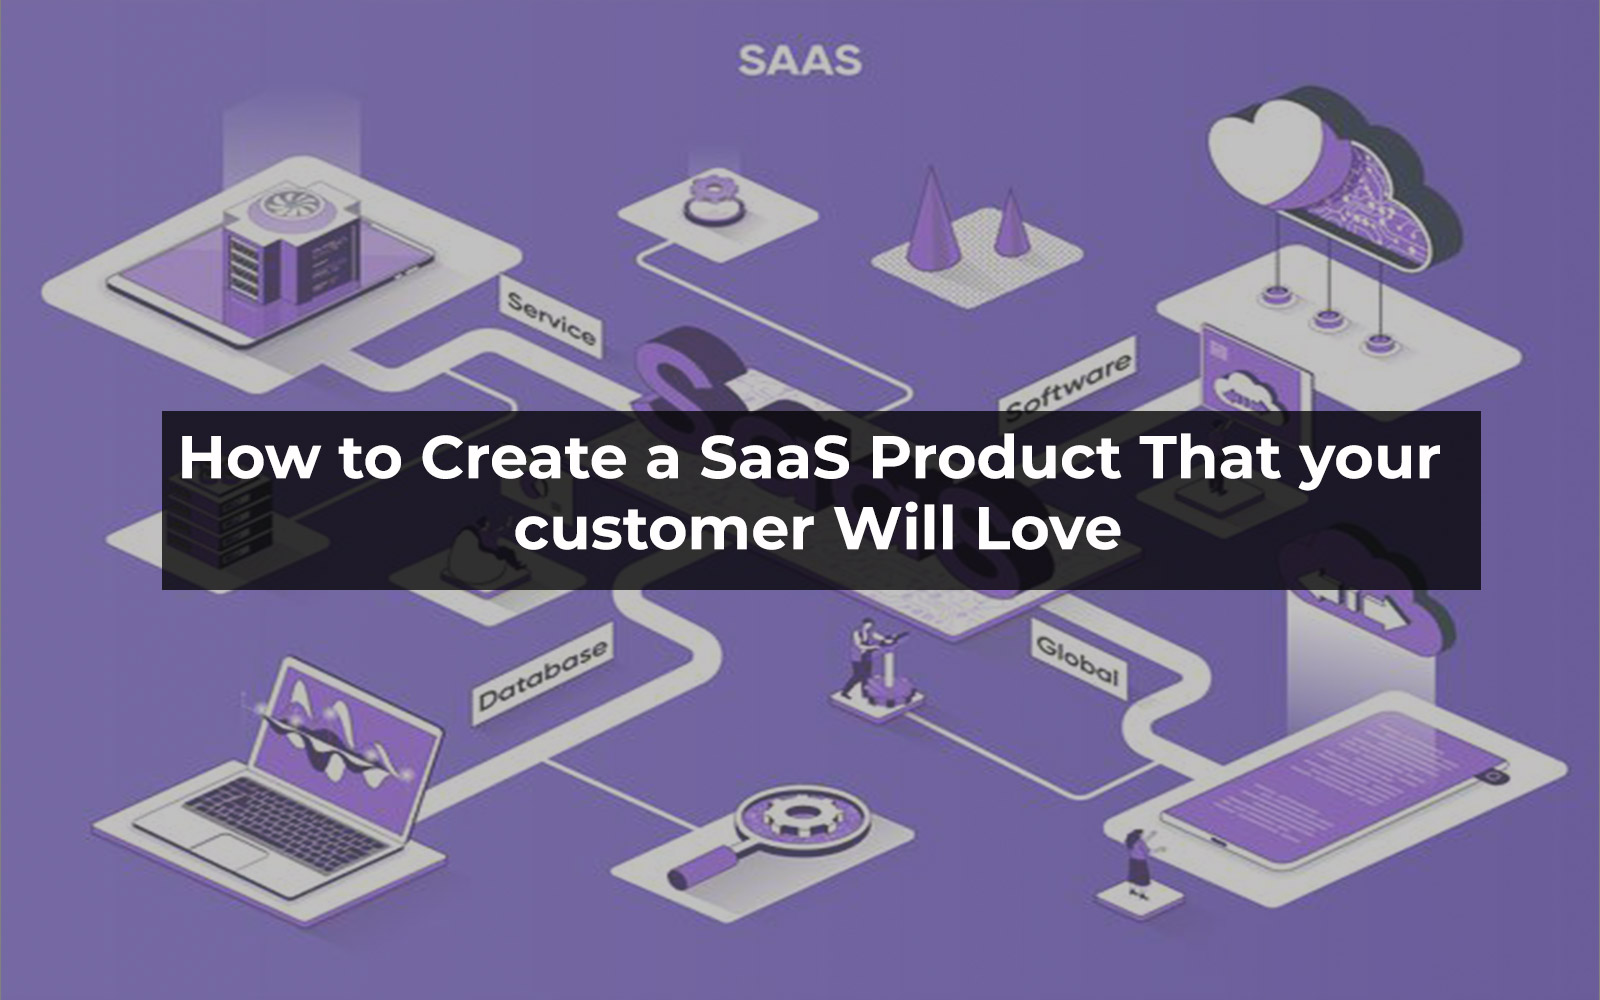 How to Come Up with a SaaS Product That People Will Love